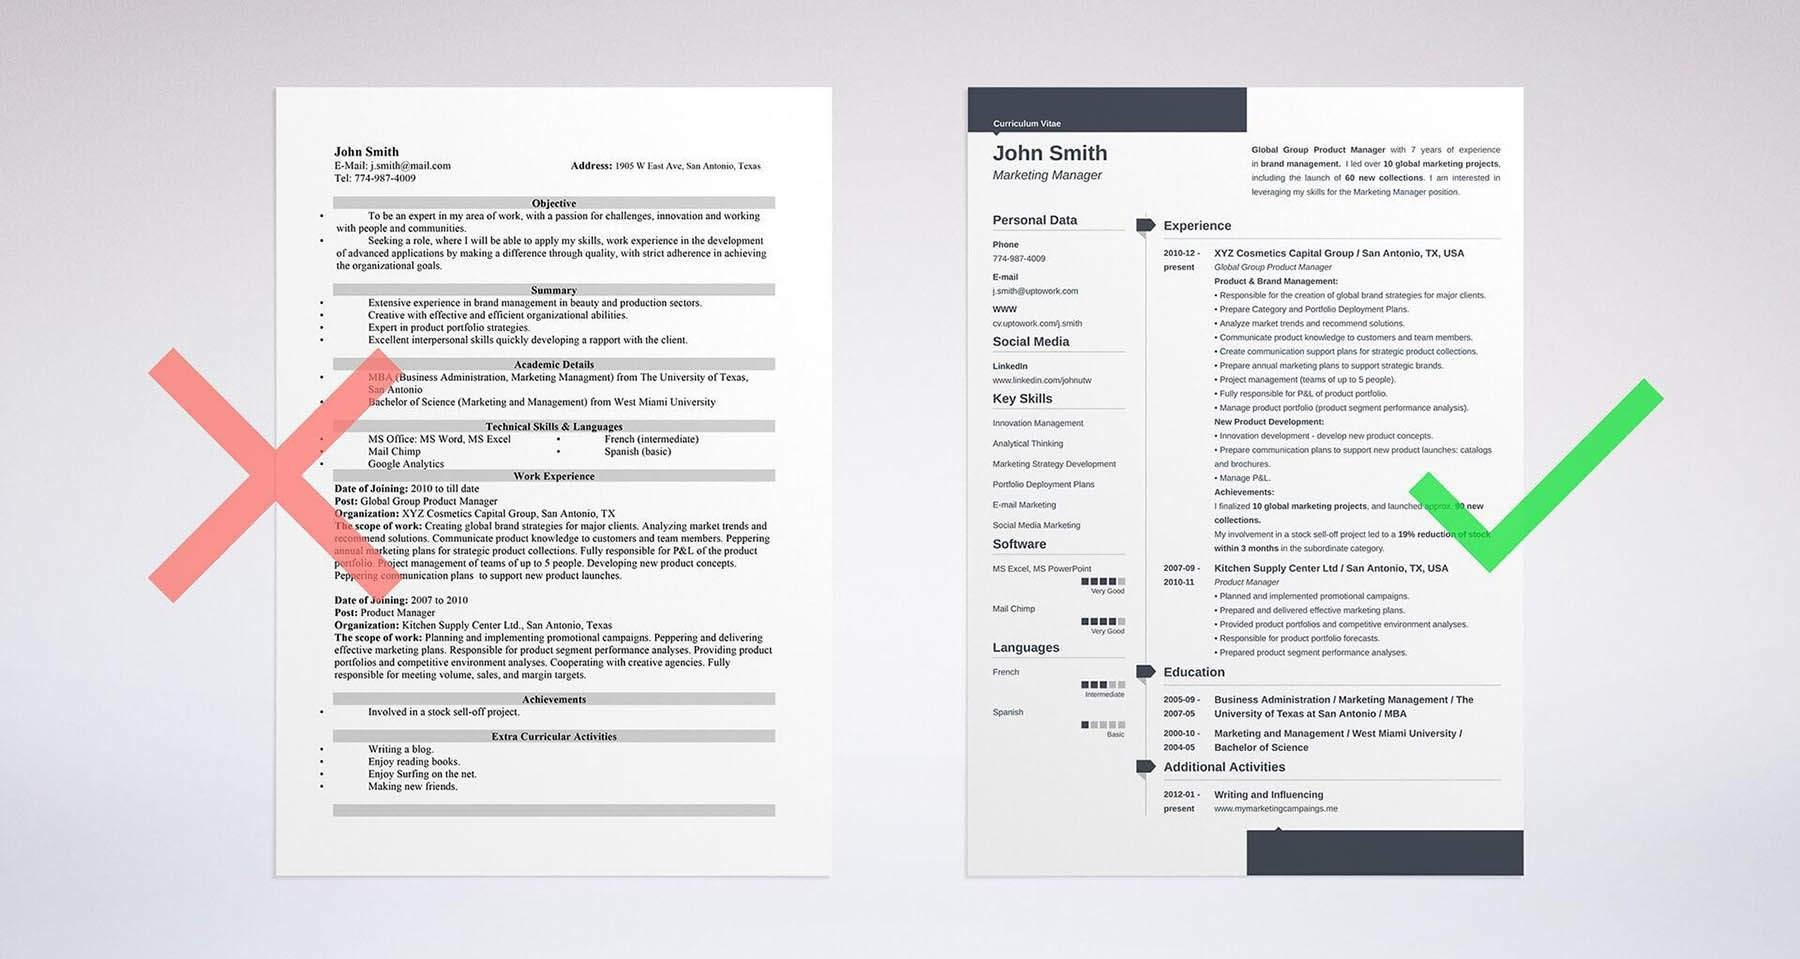 Sample Resume Objective   See +20 Resume Templates And Create Your Resume  Here  How To Write A Resumer